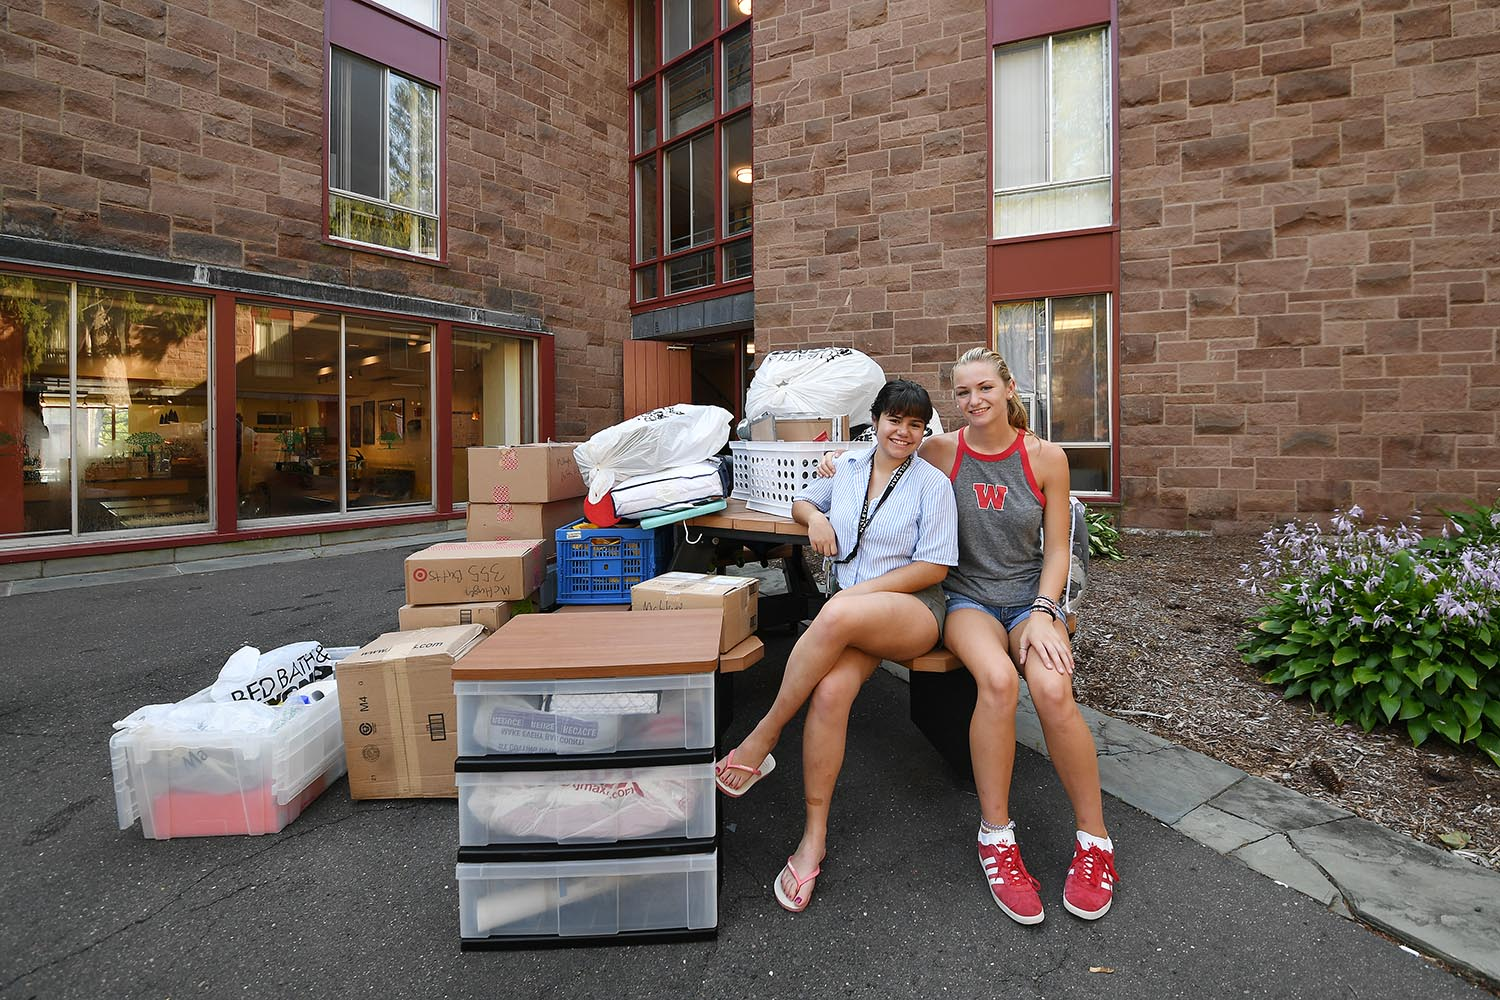 Annabella Machnizh '22, from Mexico City, who arrived early for the International Students Orientation, helped her roommate, Amanda McHugh '22, of Westchester, N.Y,, on arrival day. The two chose to room together, citing similar living habits yet different social circles to make the transition both comfortable and interesting. Both were looking forward to explore a variety of different courses.